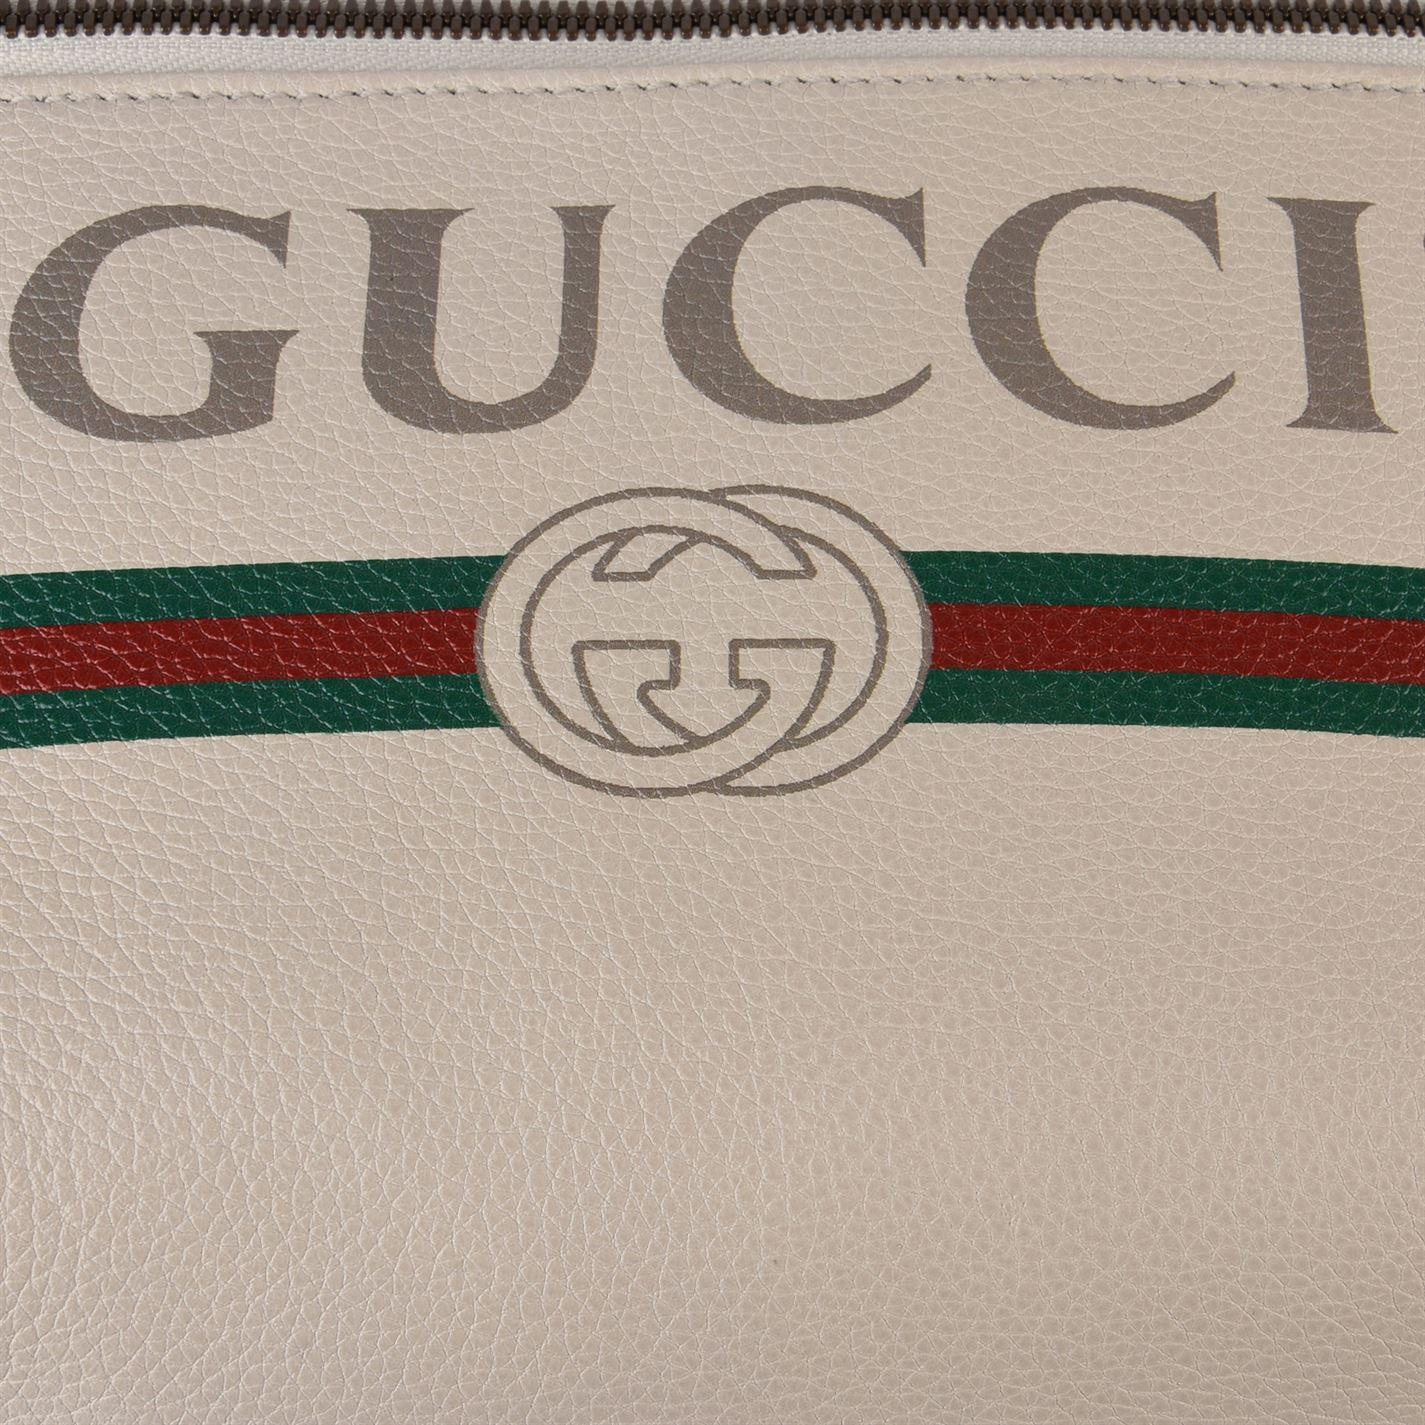 1fac0f5278f Gucci - Multicolor Fake Logo Bum Bag - Lyst. View fullscreen